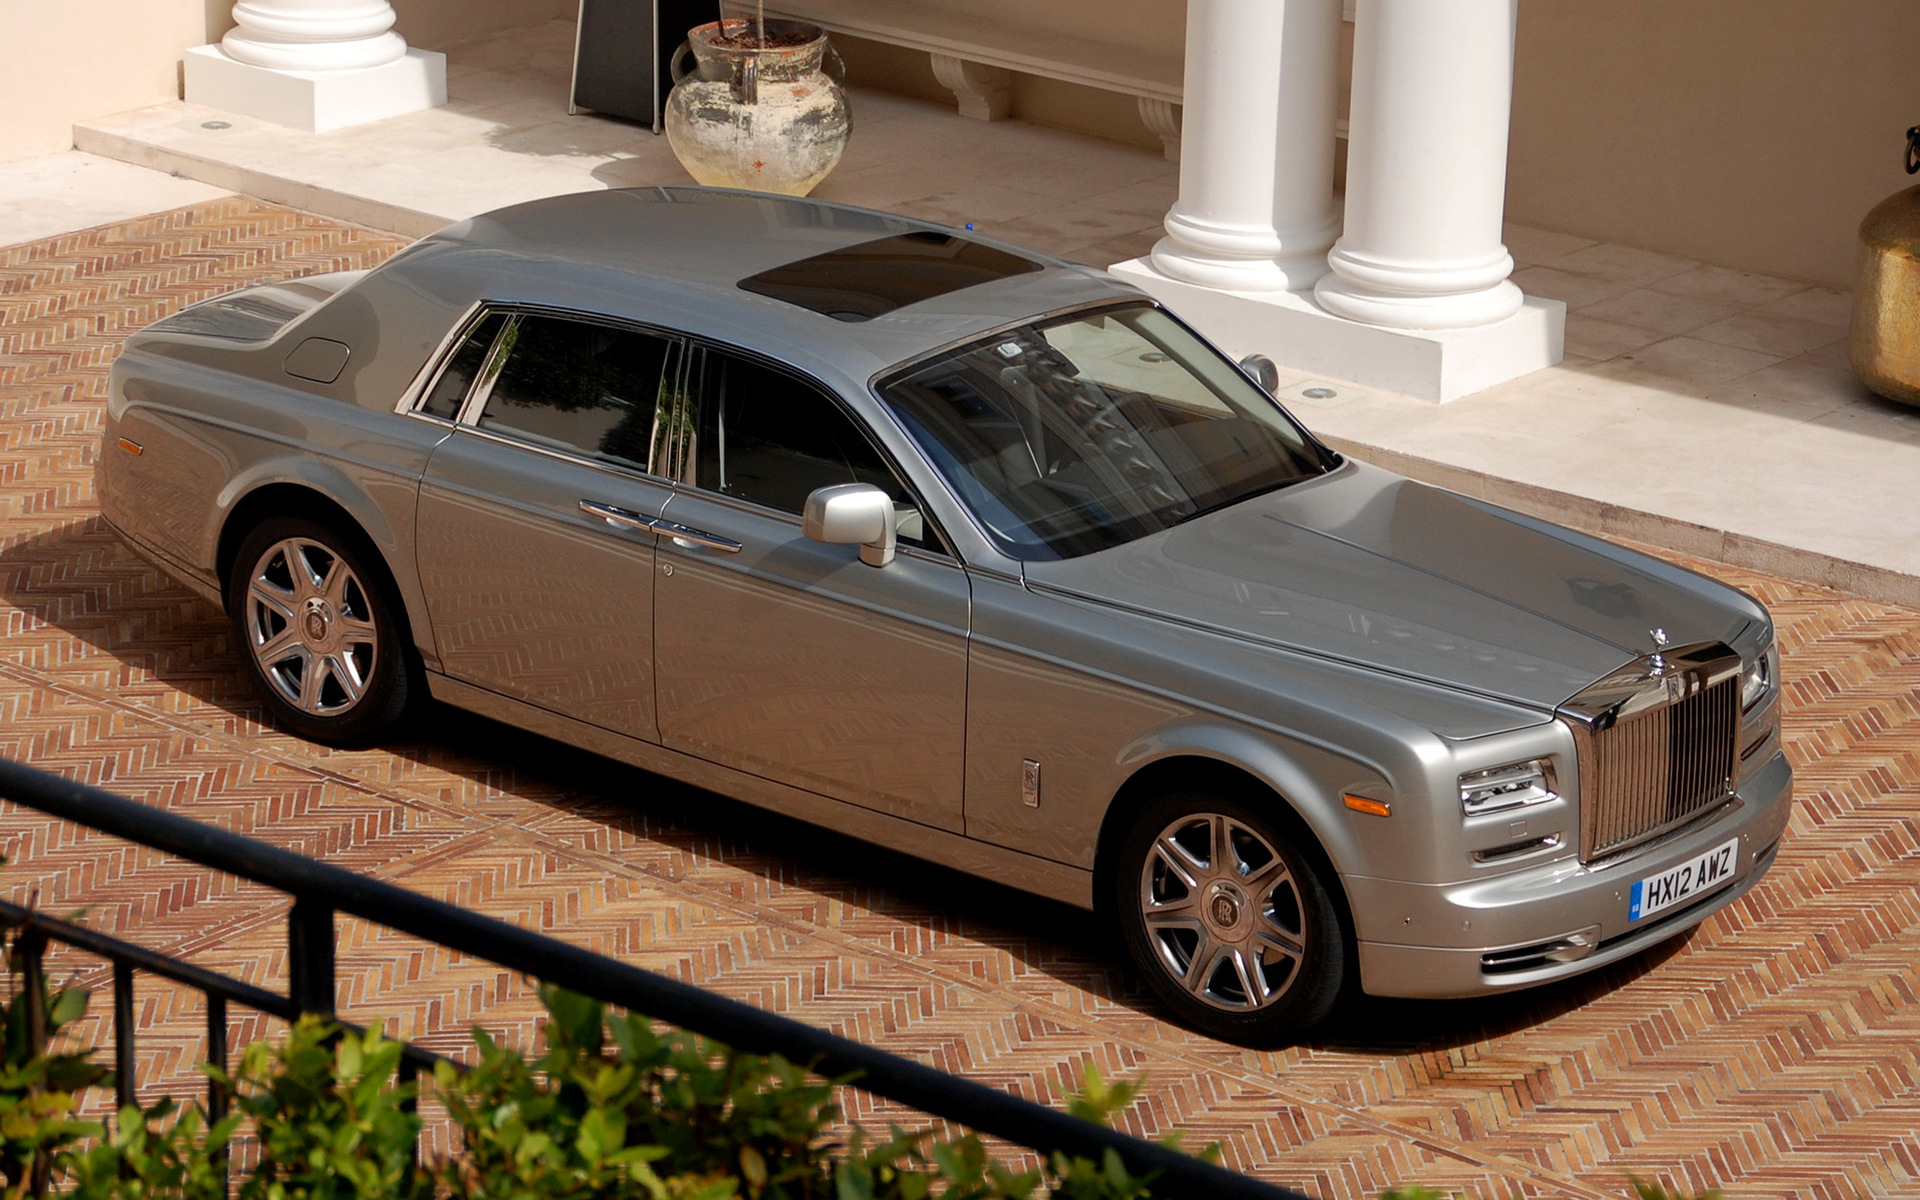 Rolls Royce Ghost 20 Car Background: 2009 Rolls-Royce Phantom - Wallpapers And HD Images